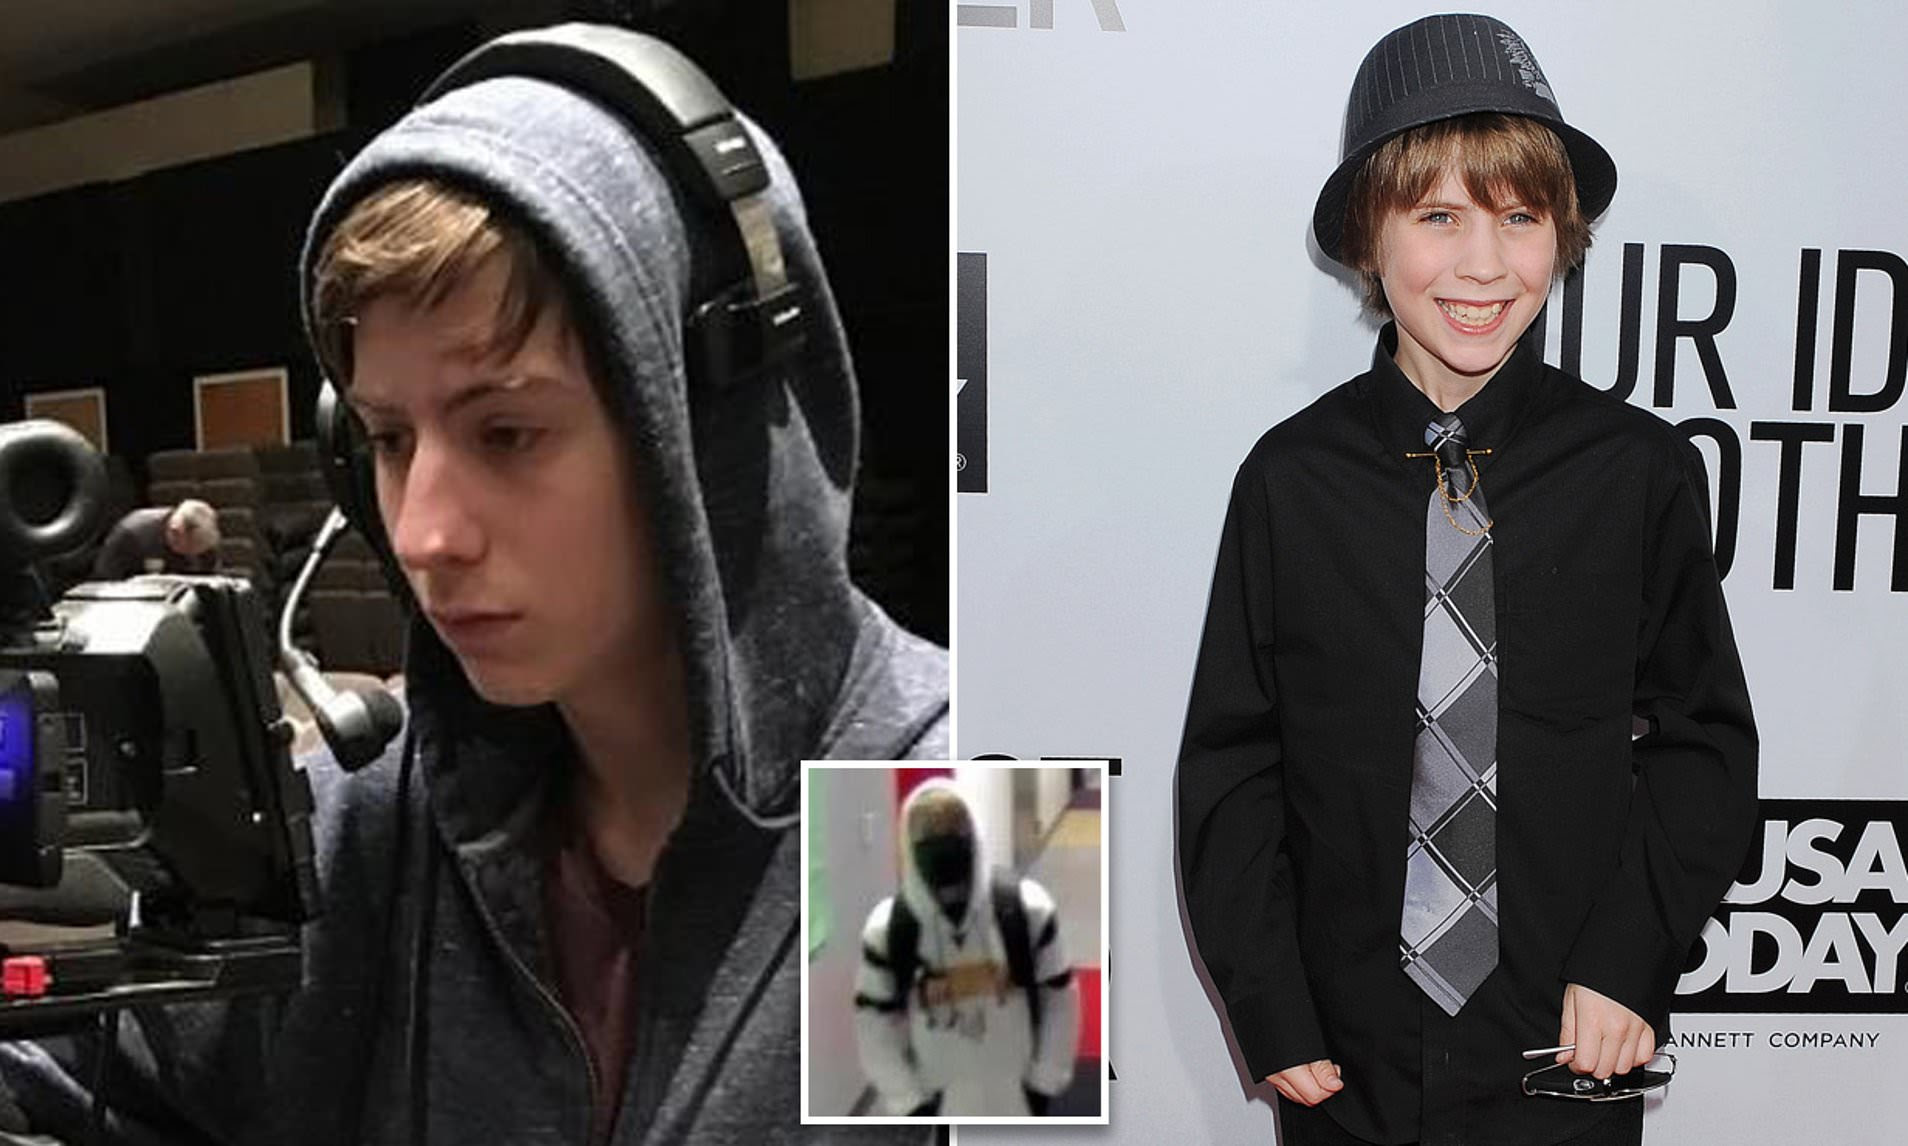 Child star Matthew Mindler, 19, killed himself by buying sodium nitrate he bought for $15 on Amazon